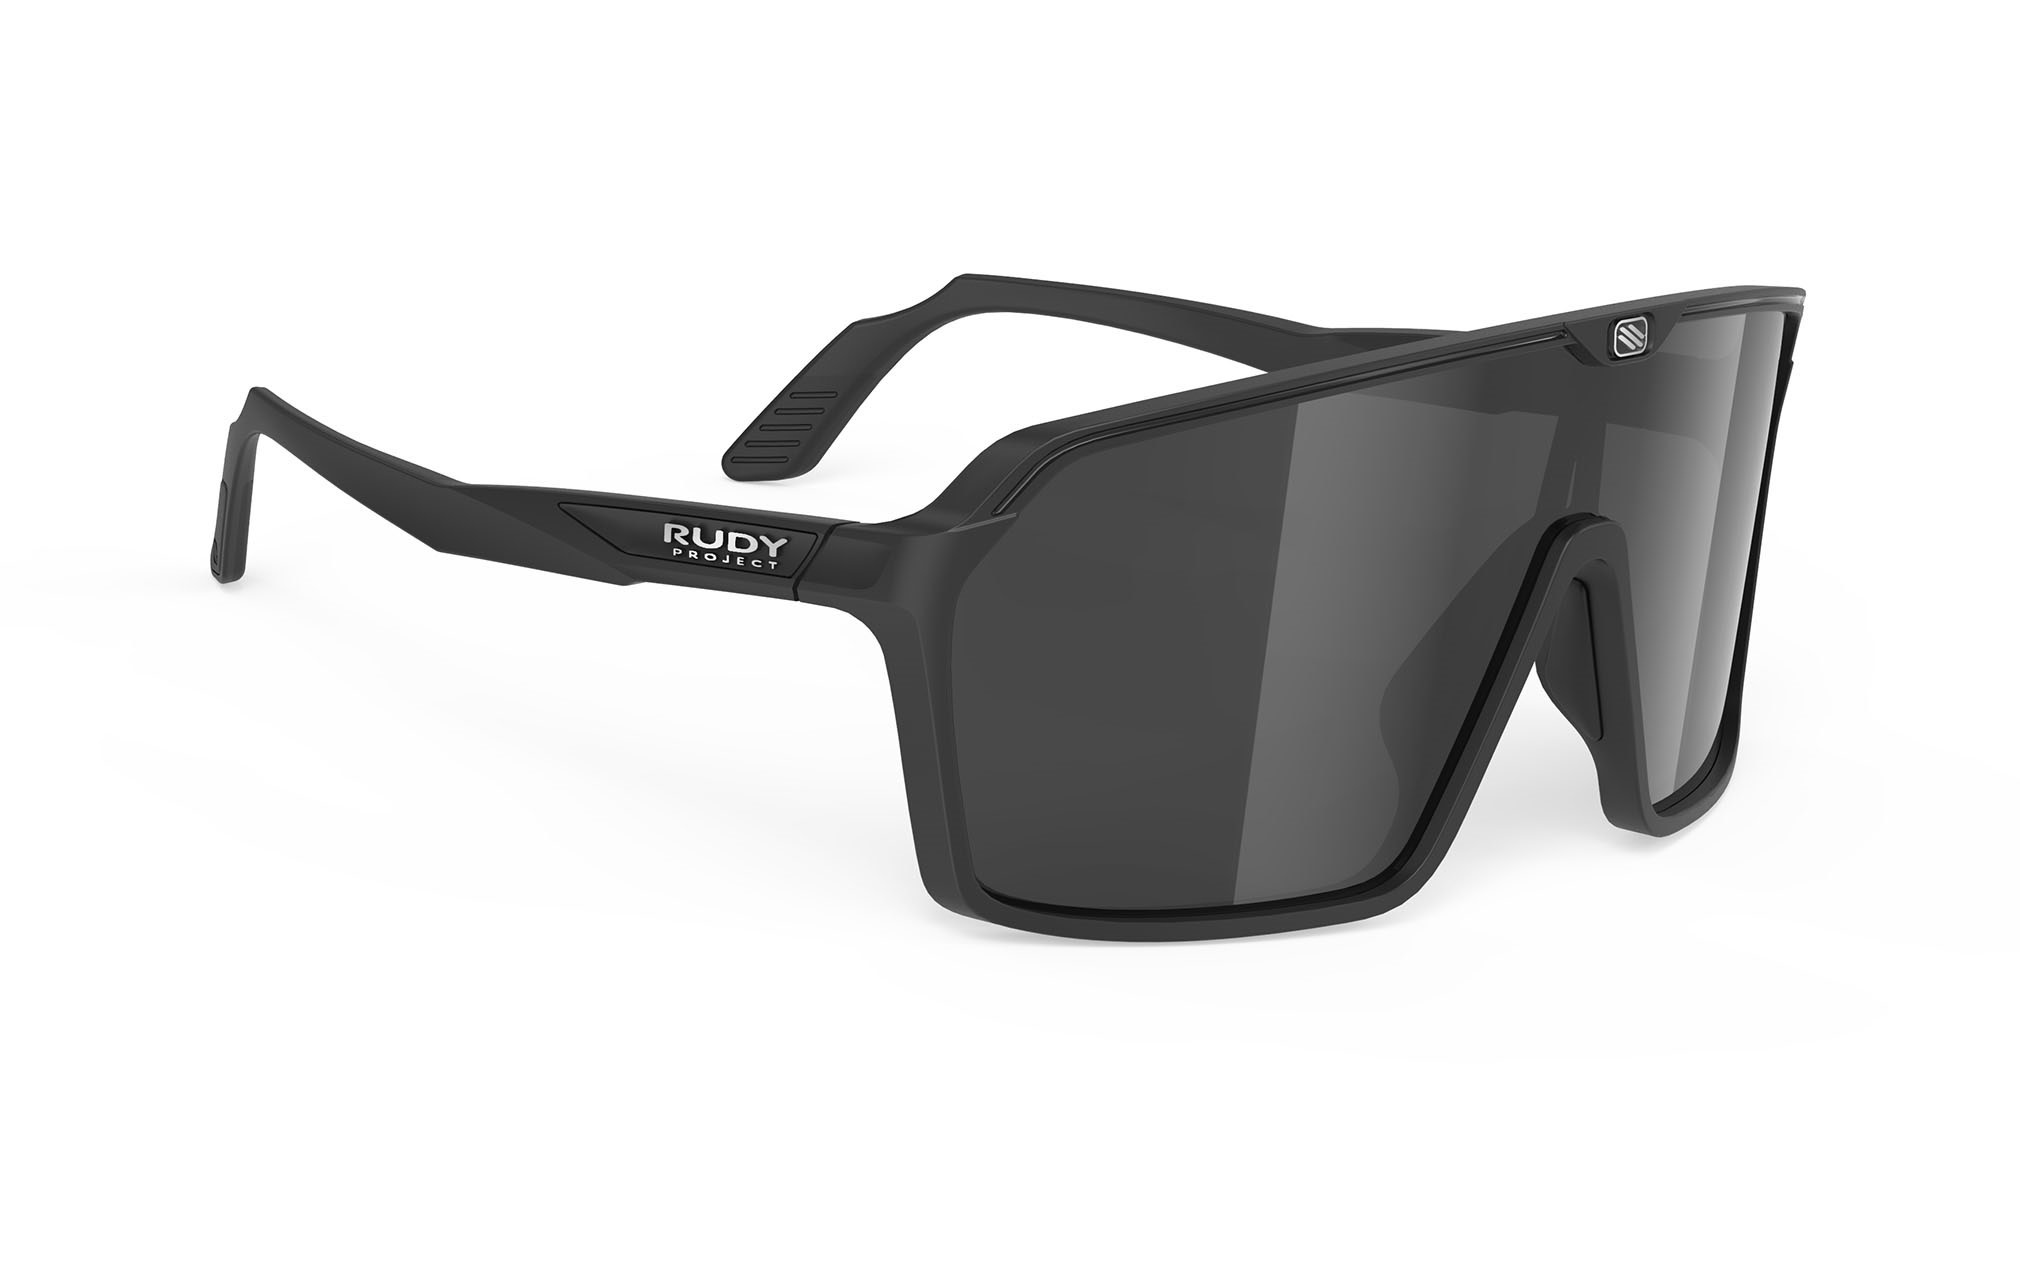 Rudy Project Rudy Project SPINSHIELD Share Black Matte - RP Optics Smoke Black